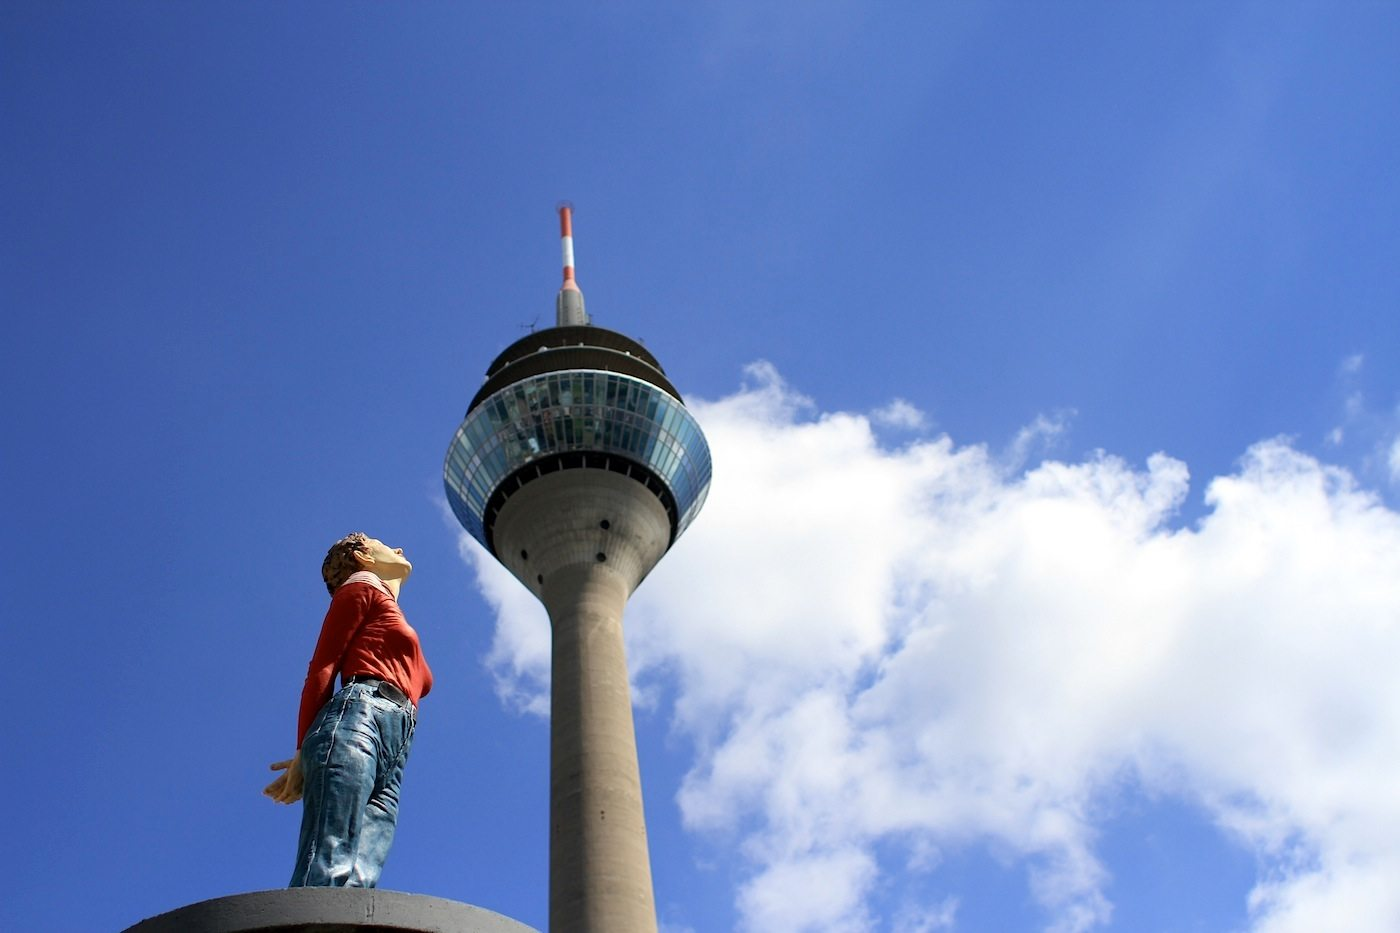 """Pillar saint """"Marlis"""" with the rhine tower.  TV tower by Harald Deilmann. Completion: 1982. Height: 234 m. """"Marlis"""" by Christoph Poggeler, who presented his """"pillar saint"""" since 2001 with sculptures of people on advertising pillars. Poggeler on the bases of advertising pillars puts children, couples, businessmen, holiday-makers or homeless - all in the Dusseldorf city centre. People from the middle of society - lifted out of the everyday life."""